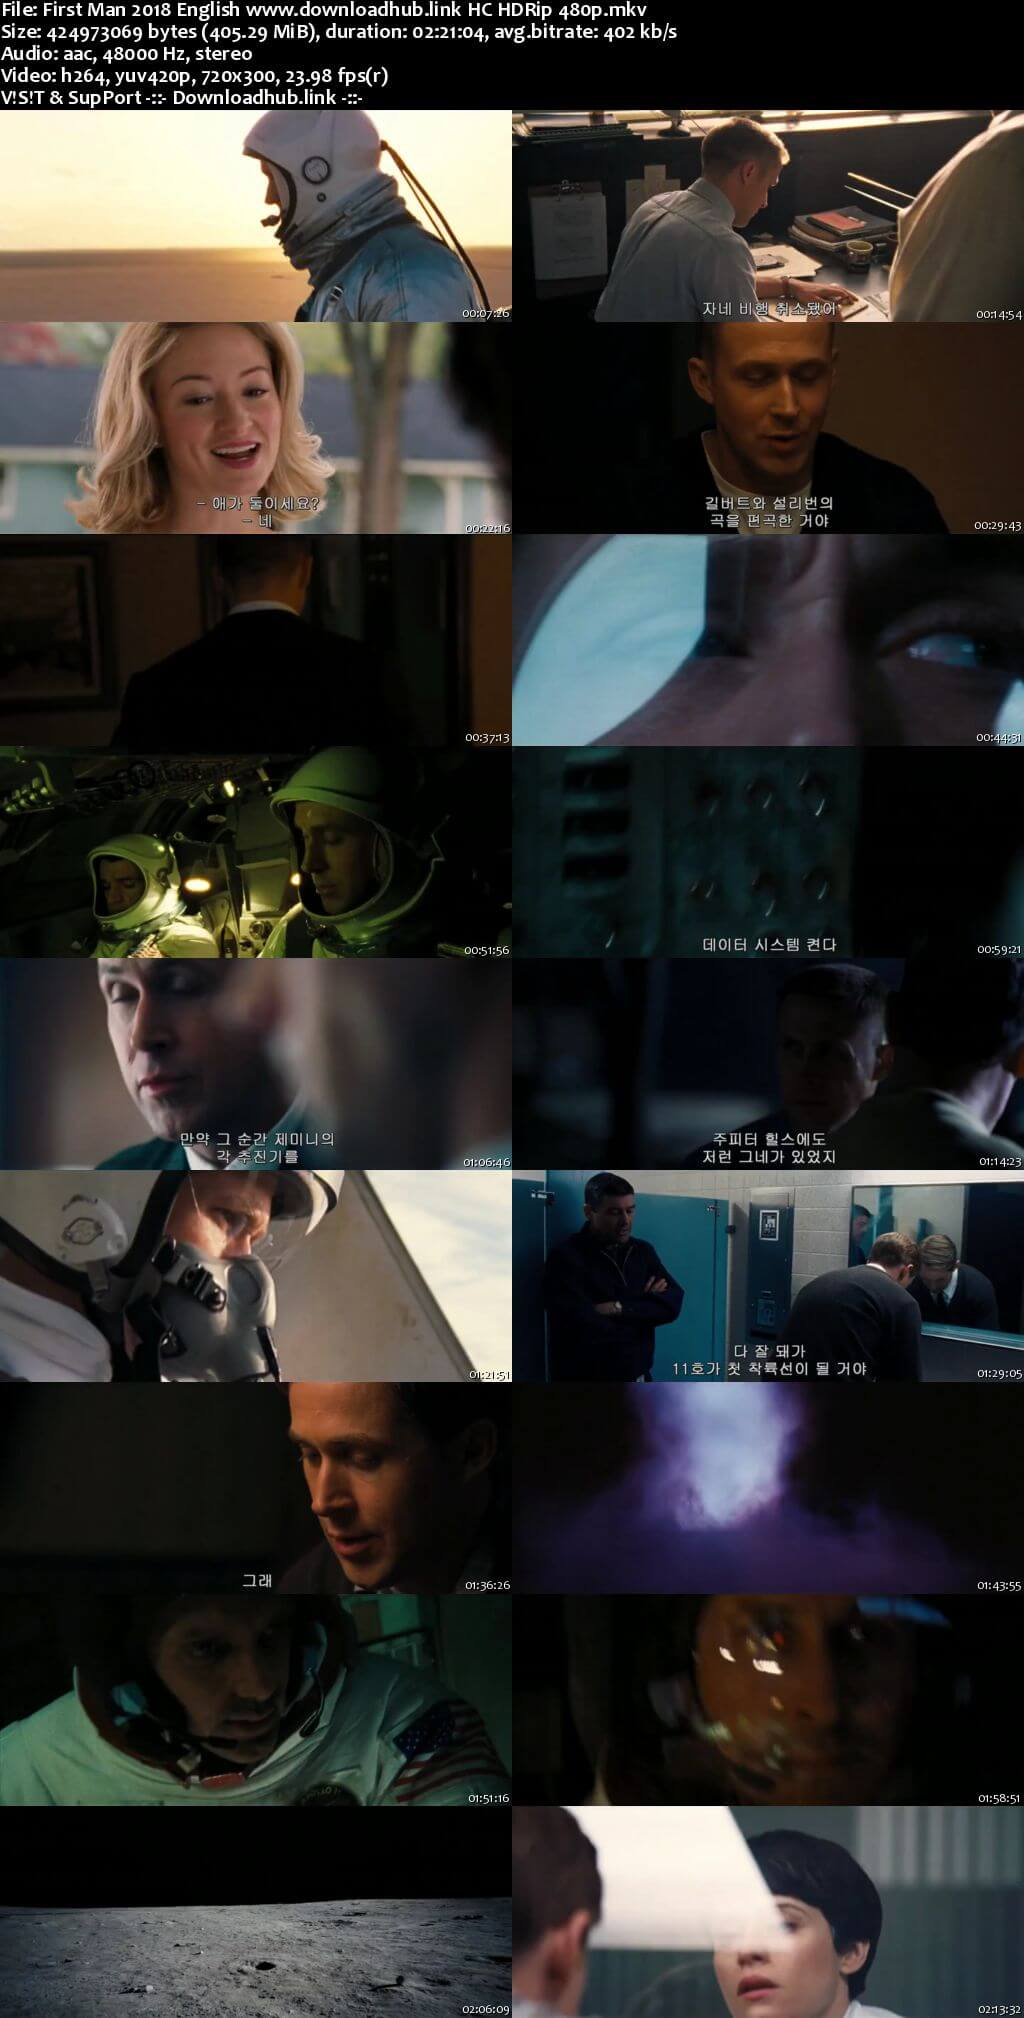 First Man 2018 English 400MB HC HDRip 480p